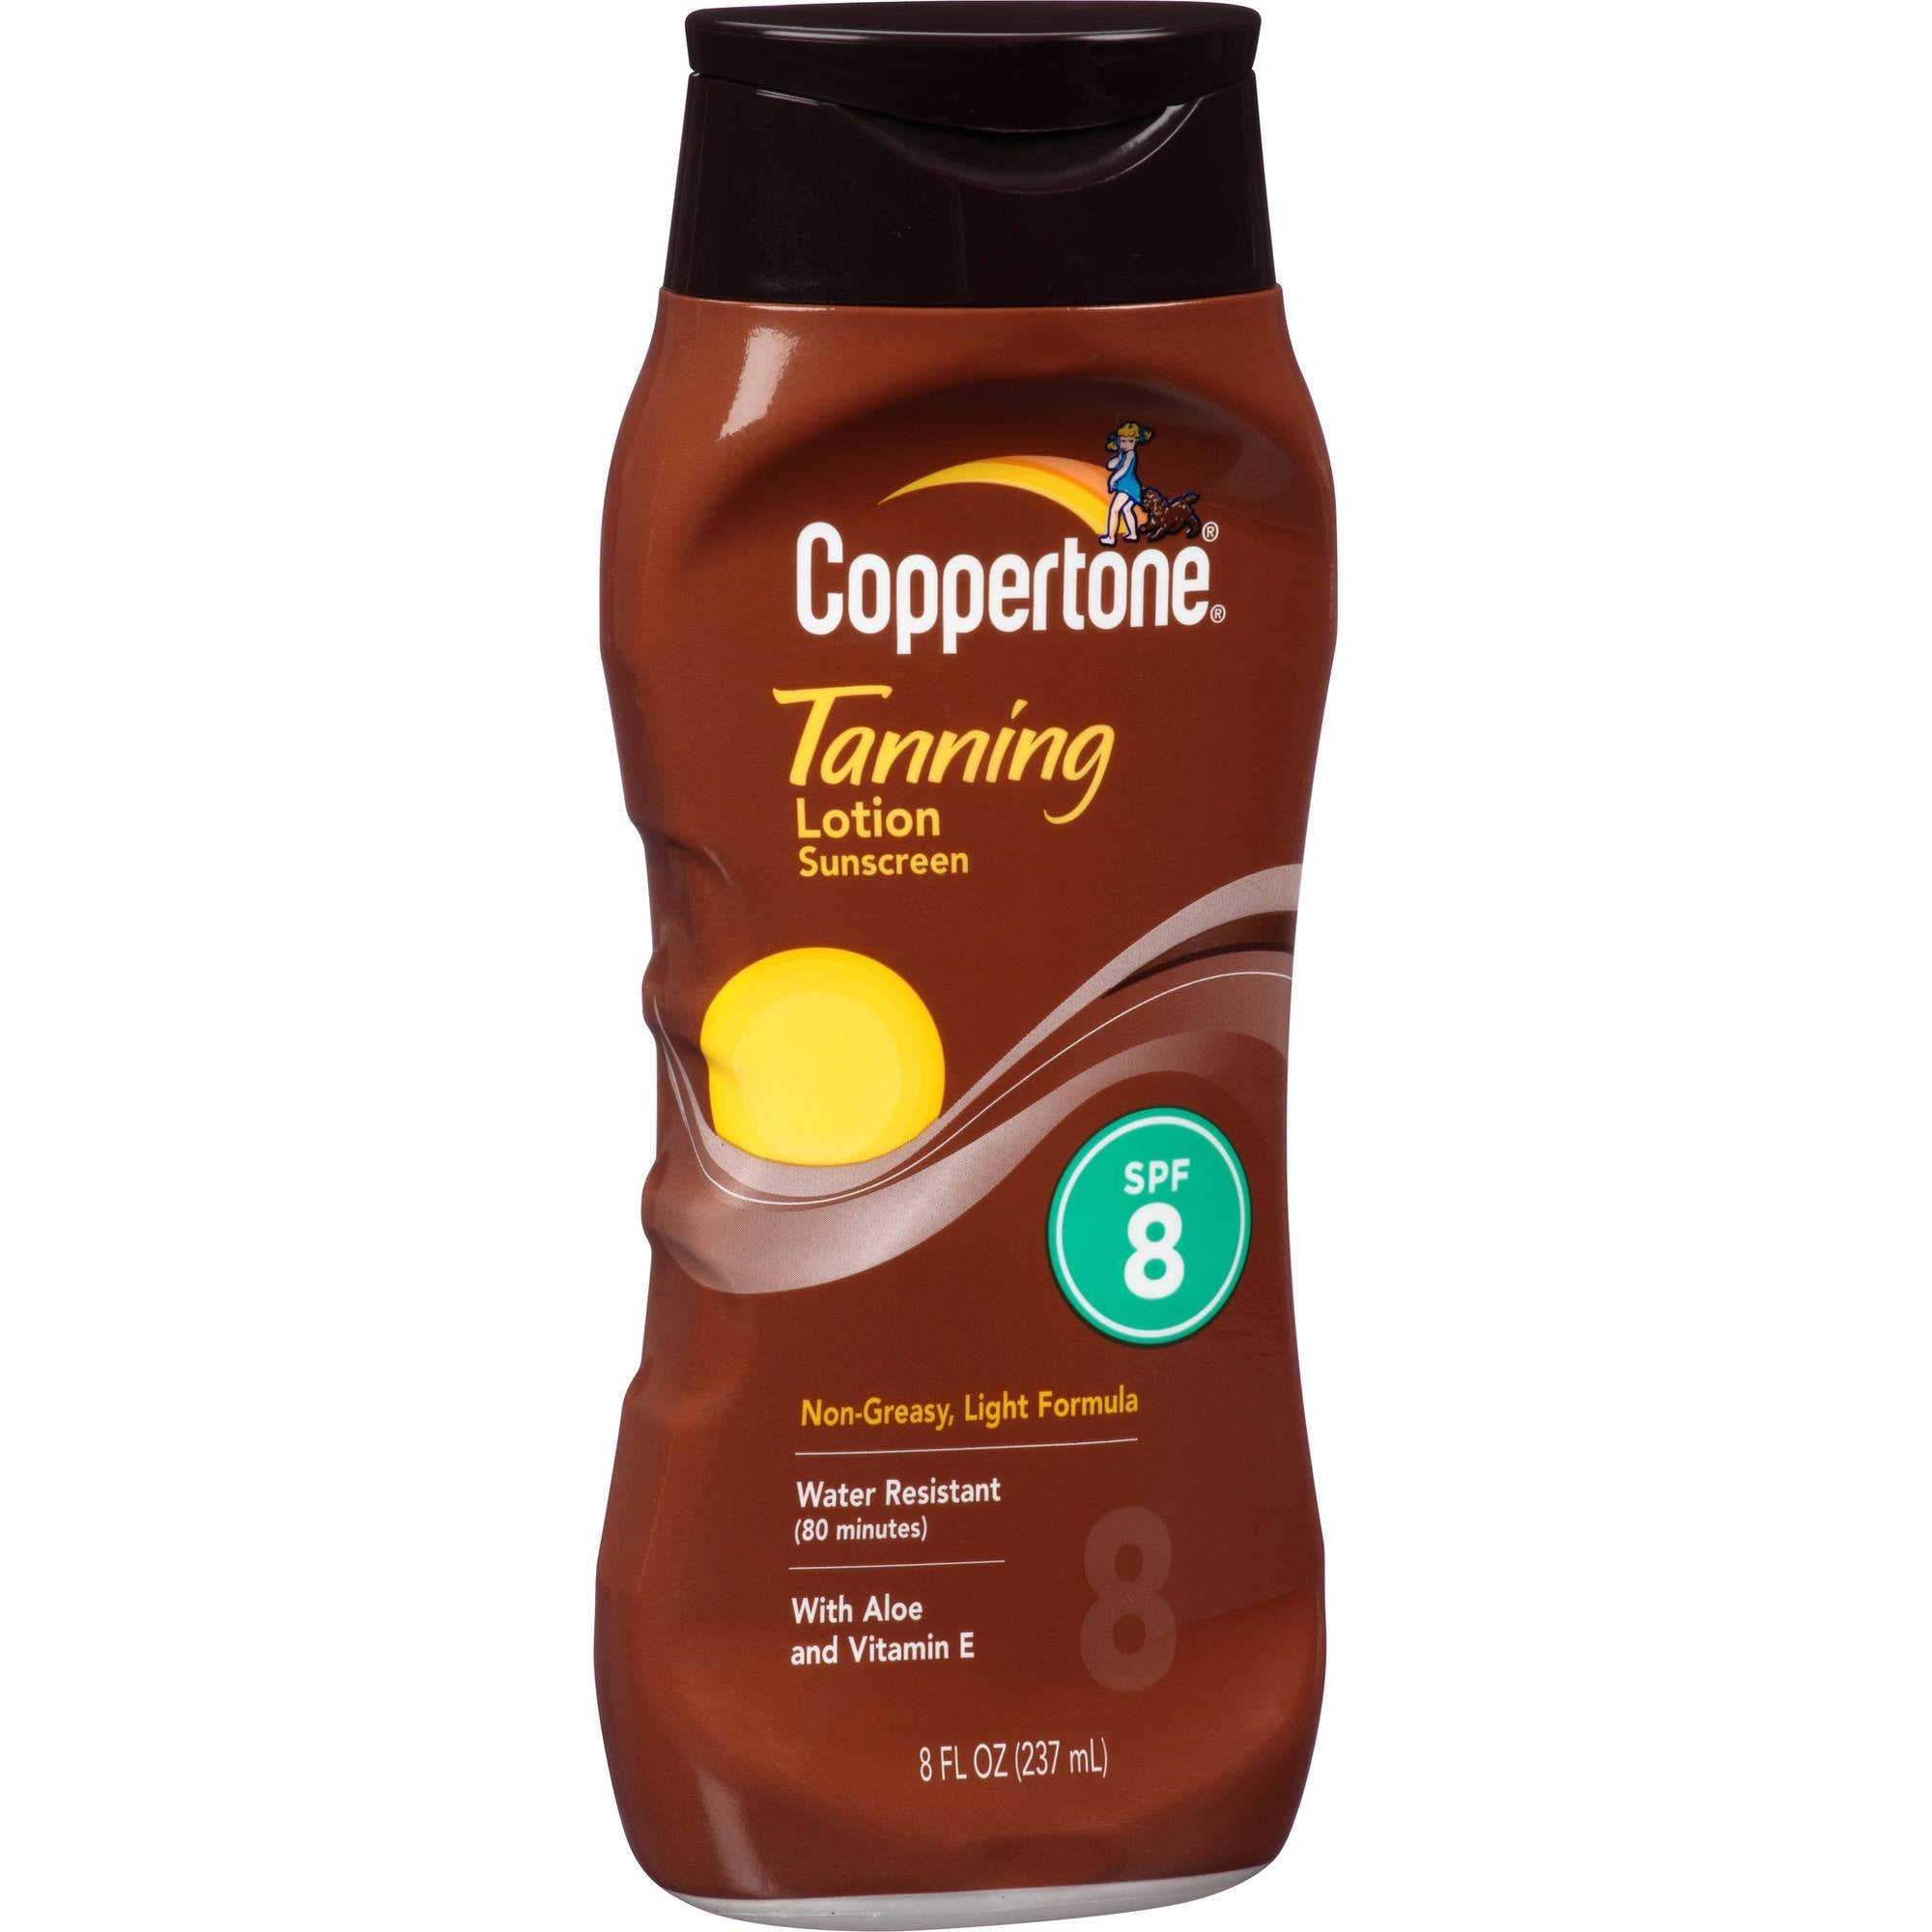 Buy Coppertone Tanning Sunscreen Lotion 8 SPF by Schering Plough online | Mountainside Medical Equipment